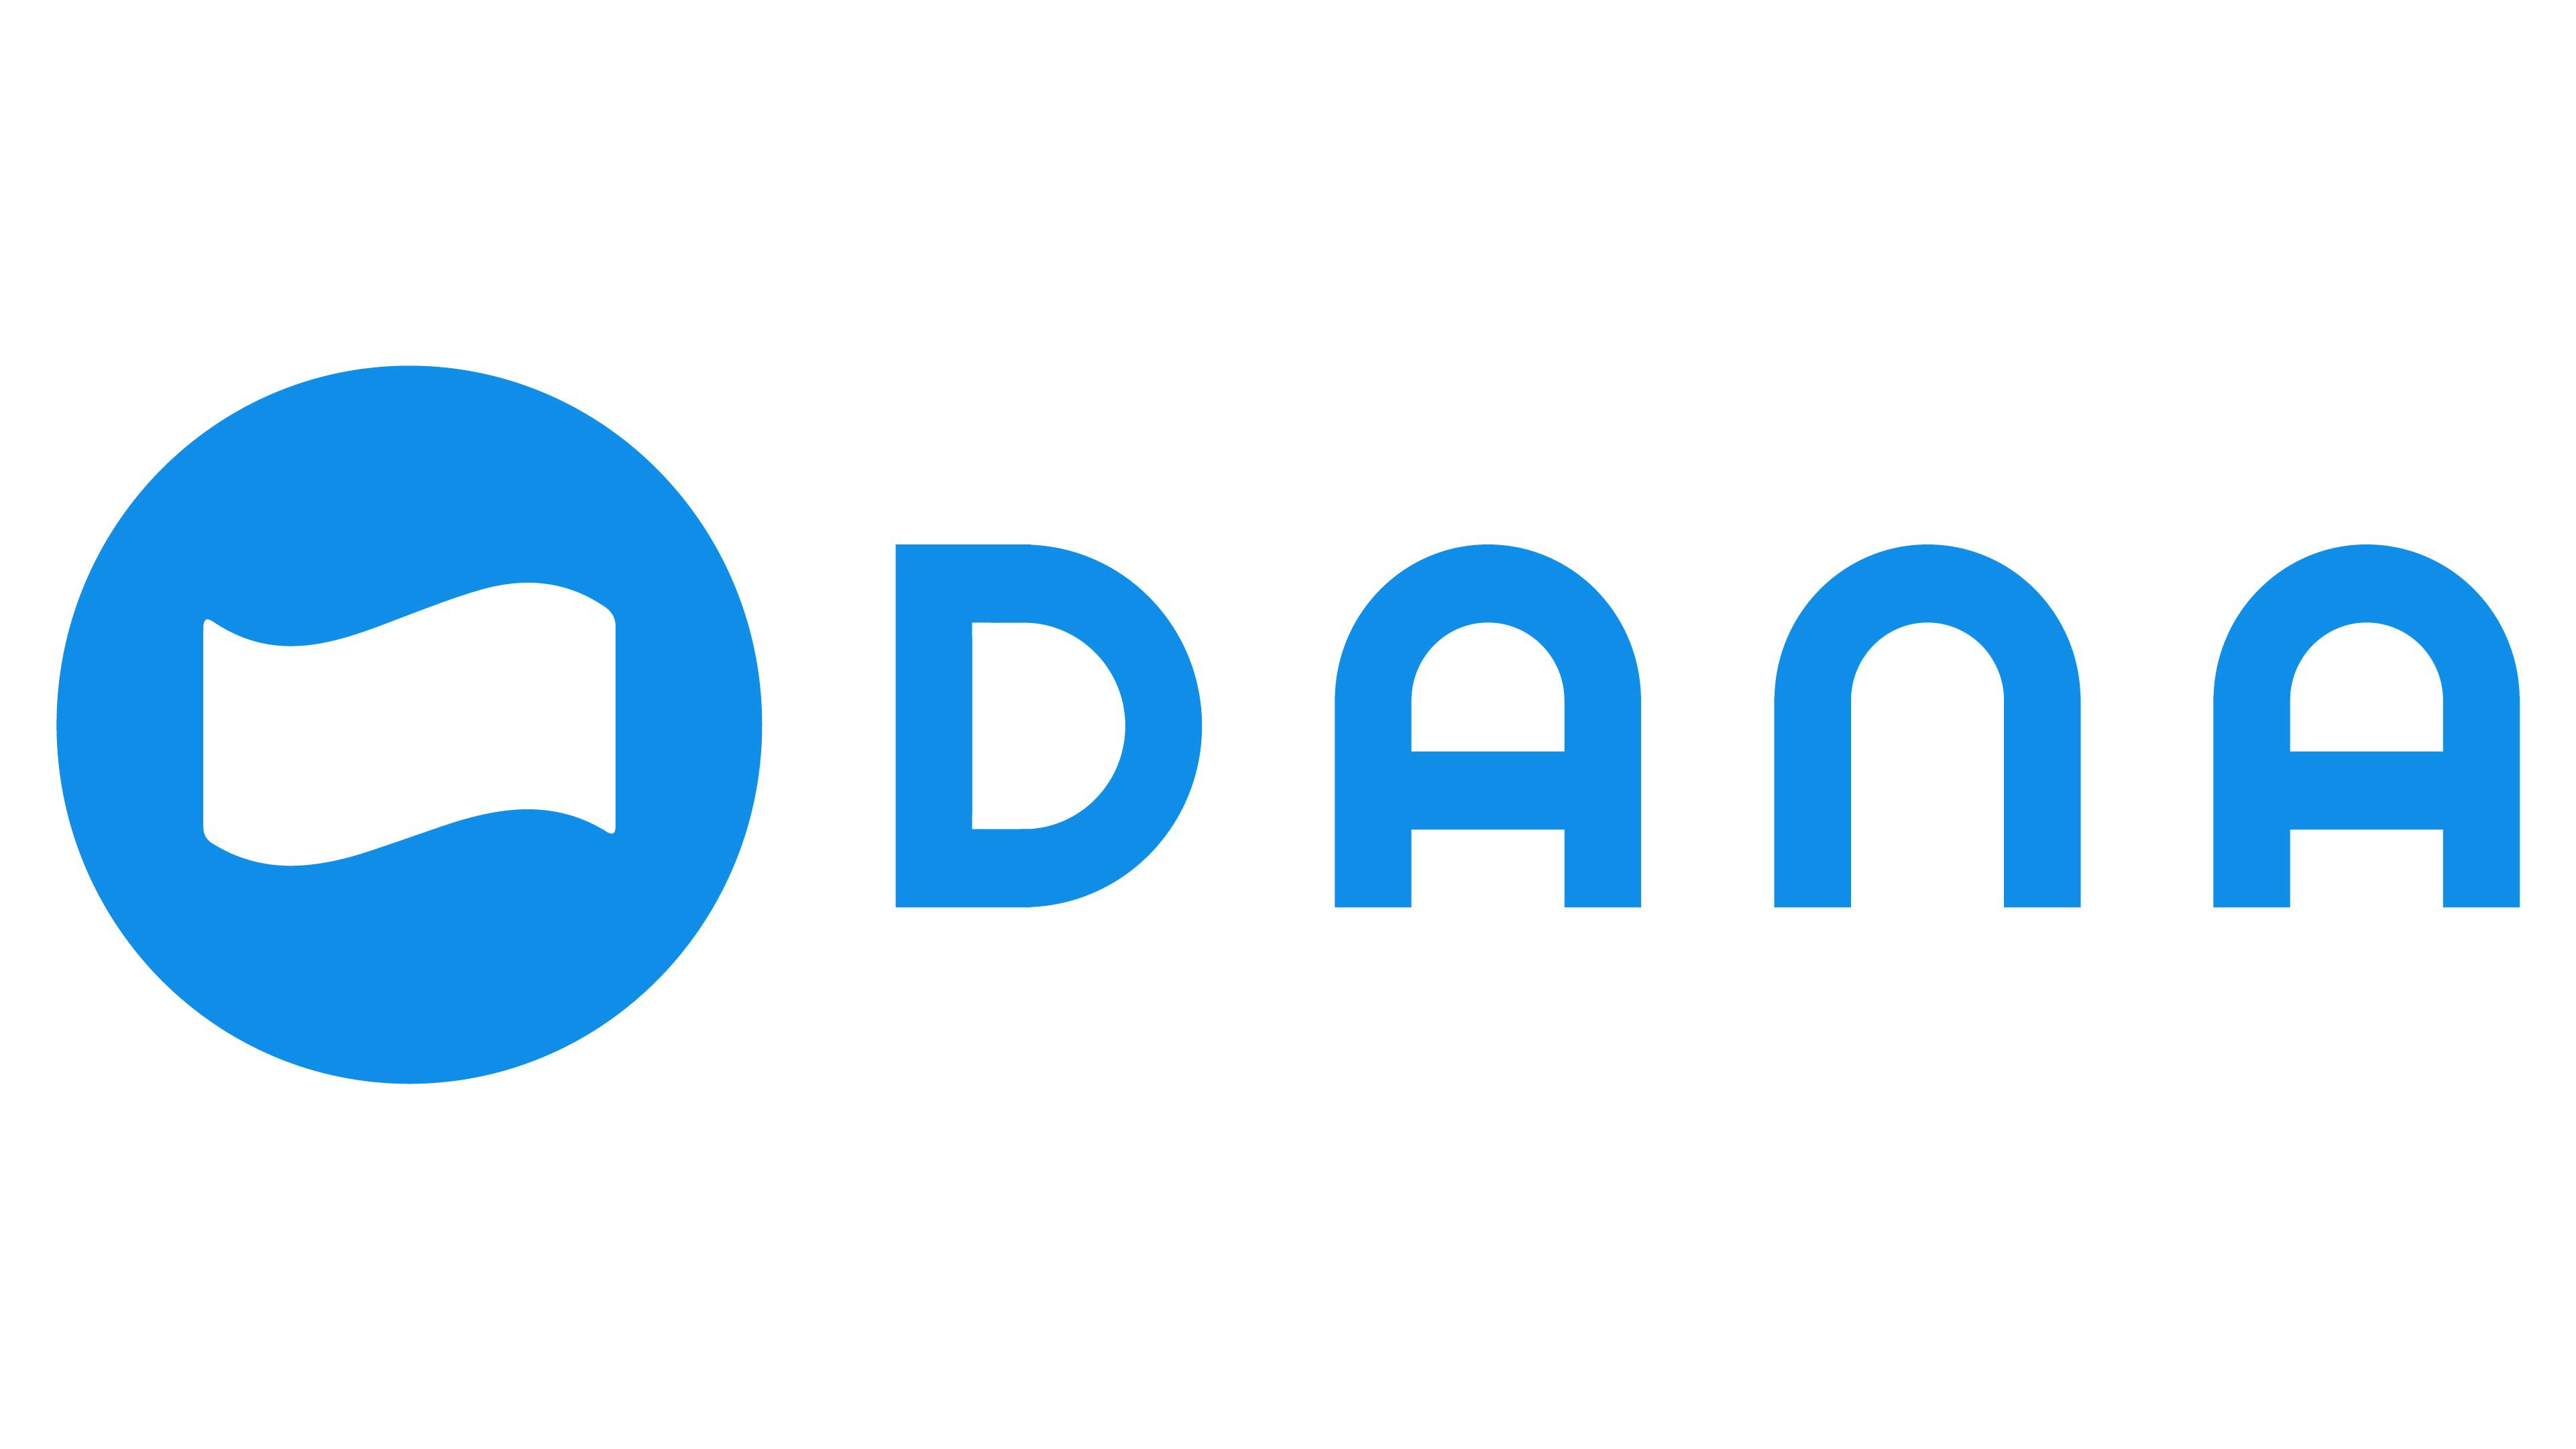 DANA Indonesia Careers, Job Hiring & Openings | Kalibrr